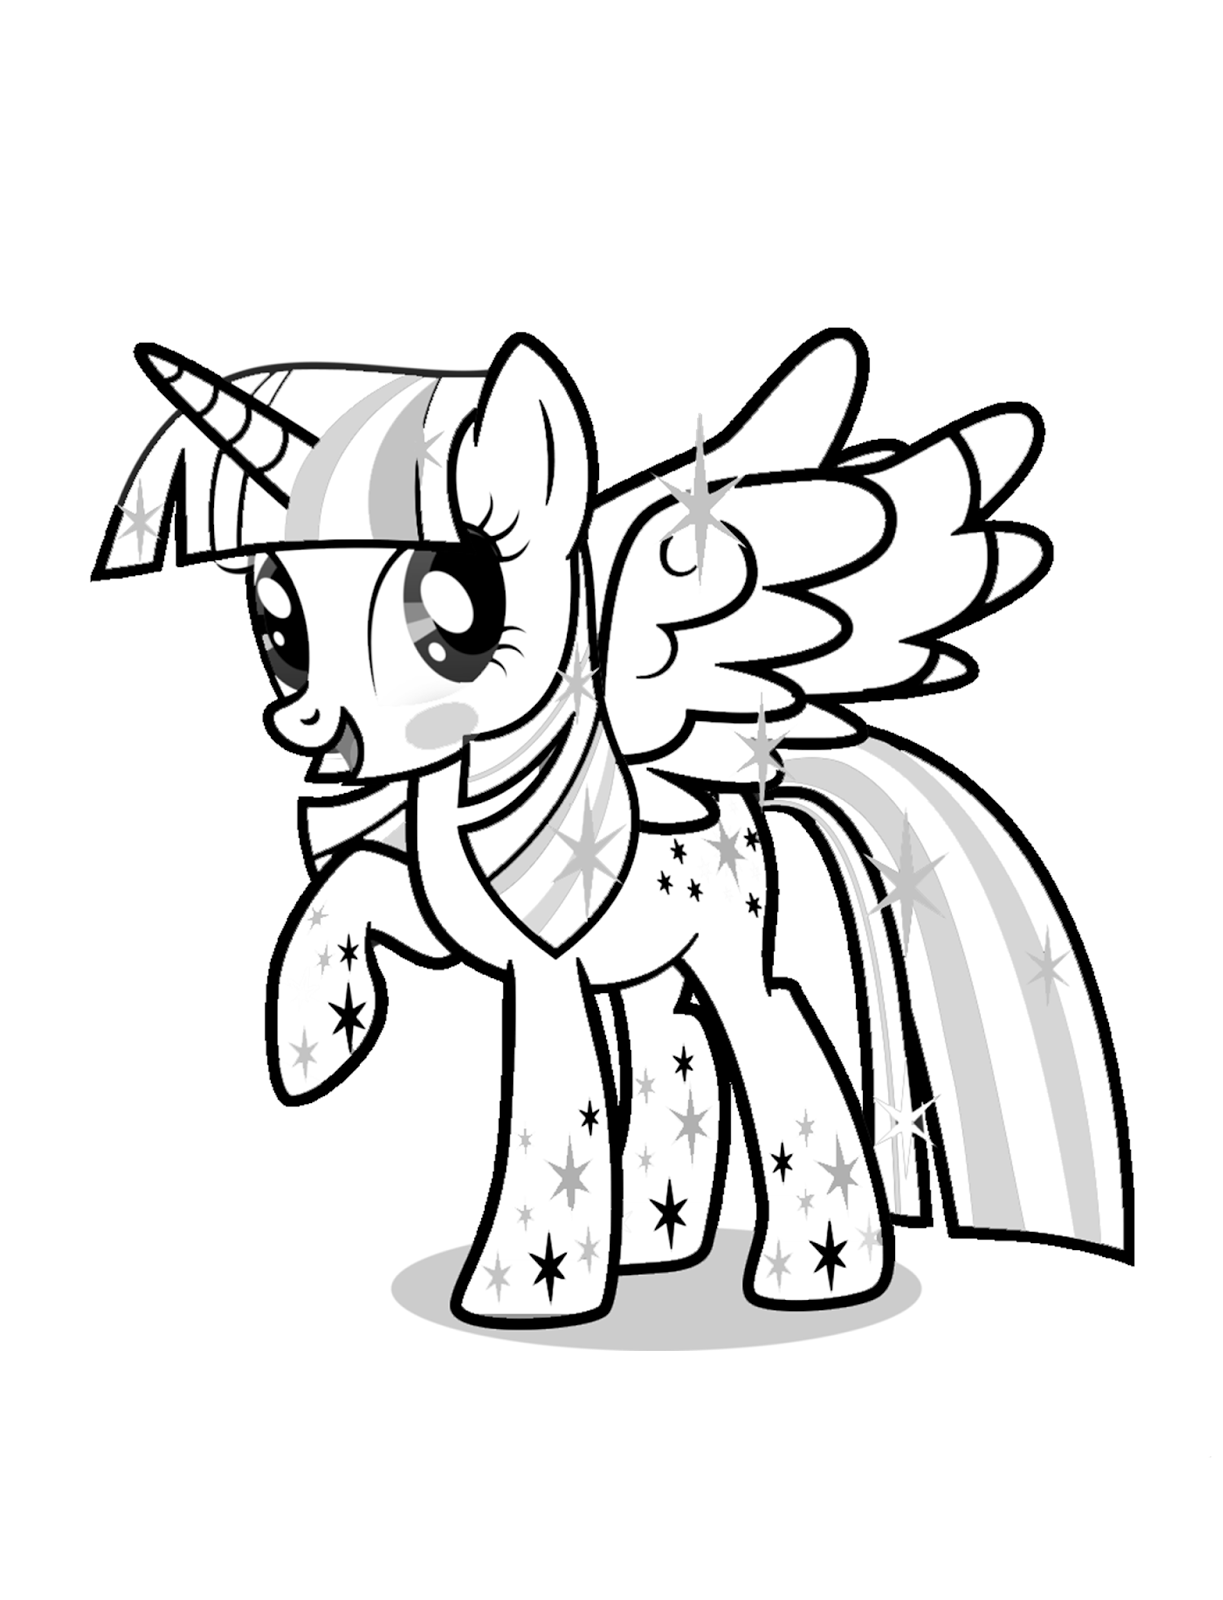 twilight sparkle colouring pages coloring fun twilight sparkle twilight colouring sparkle pages